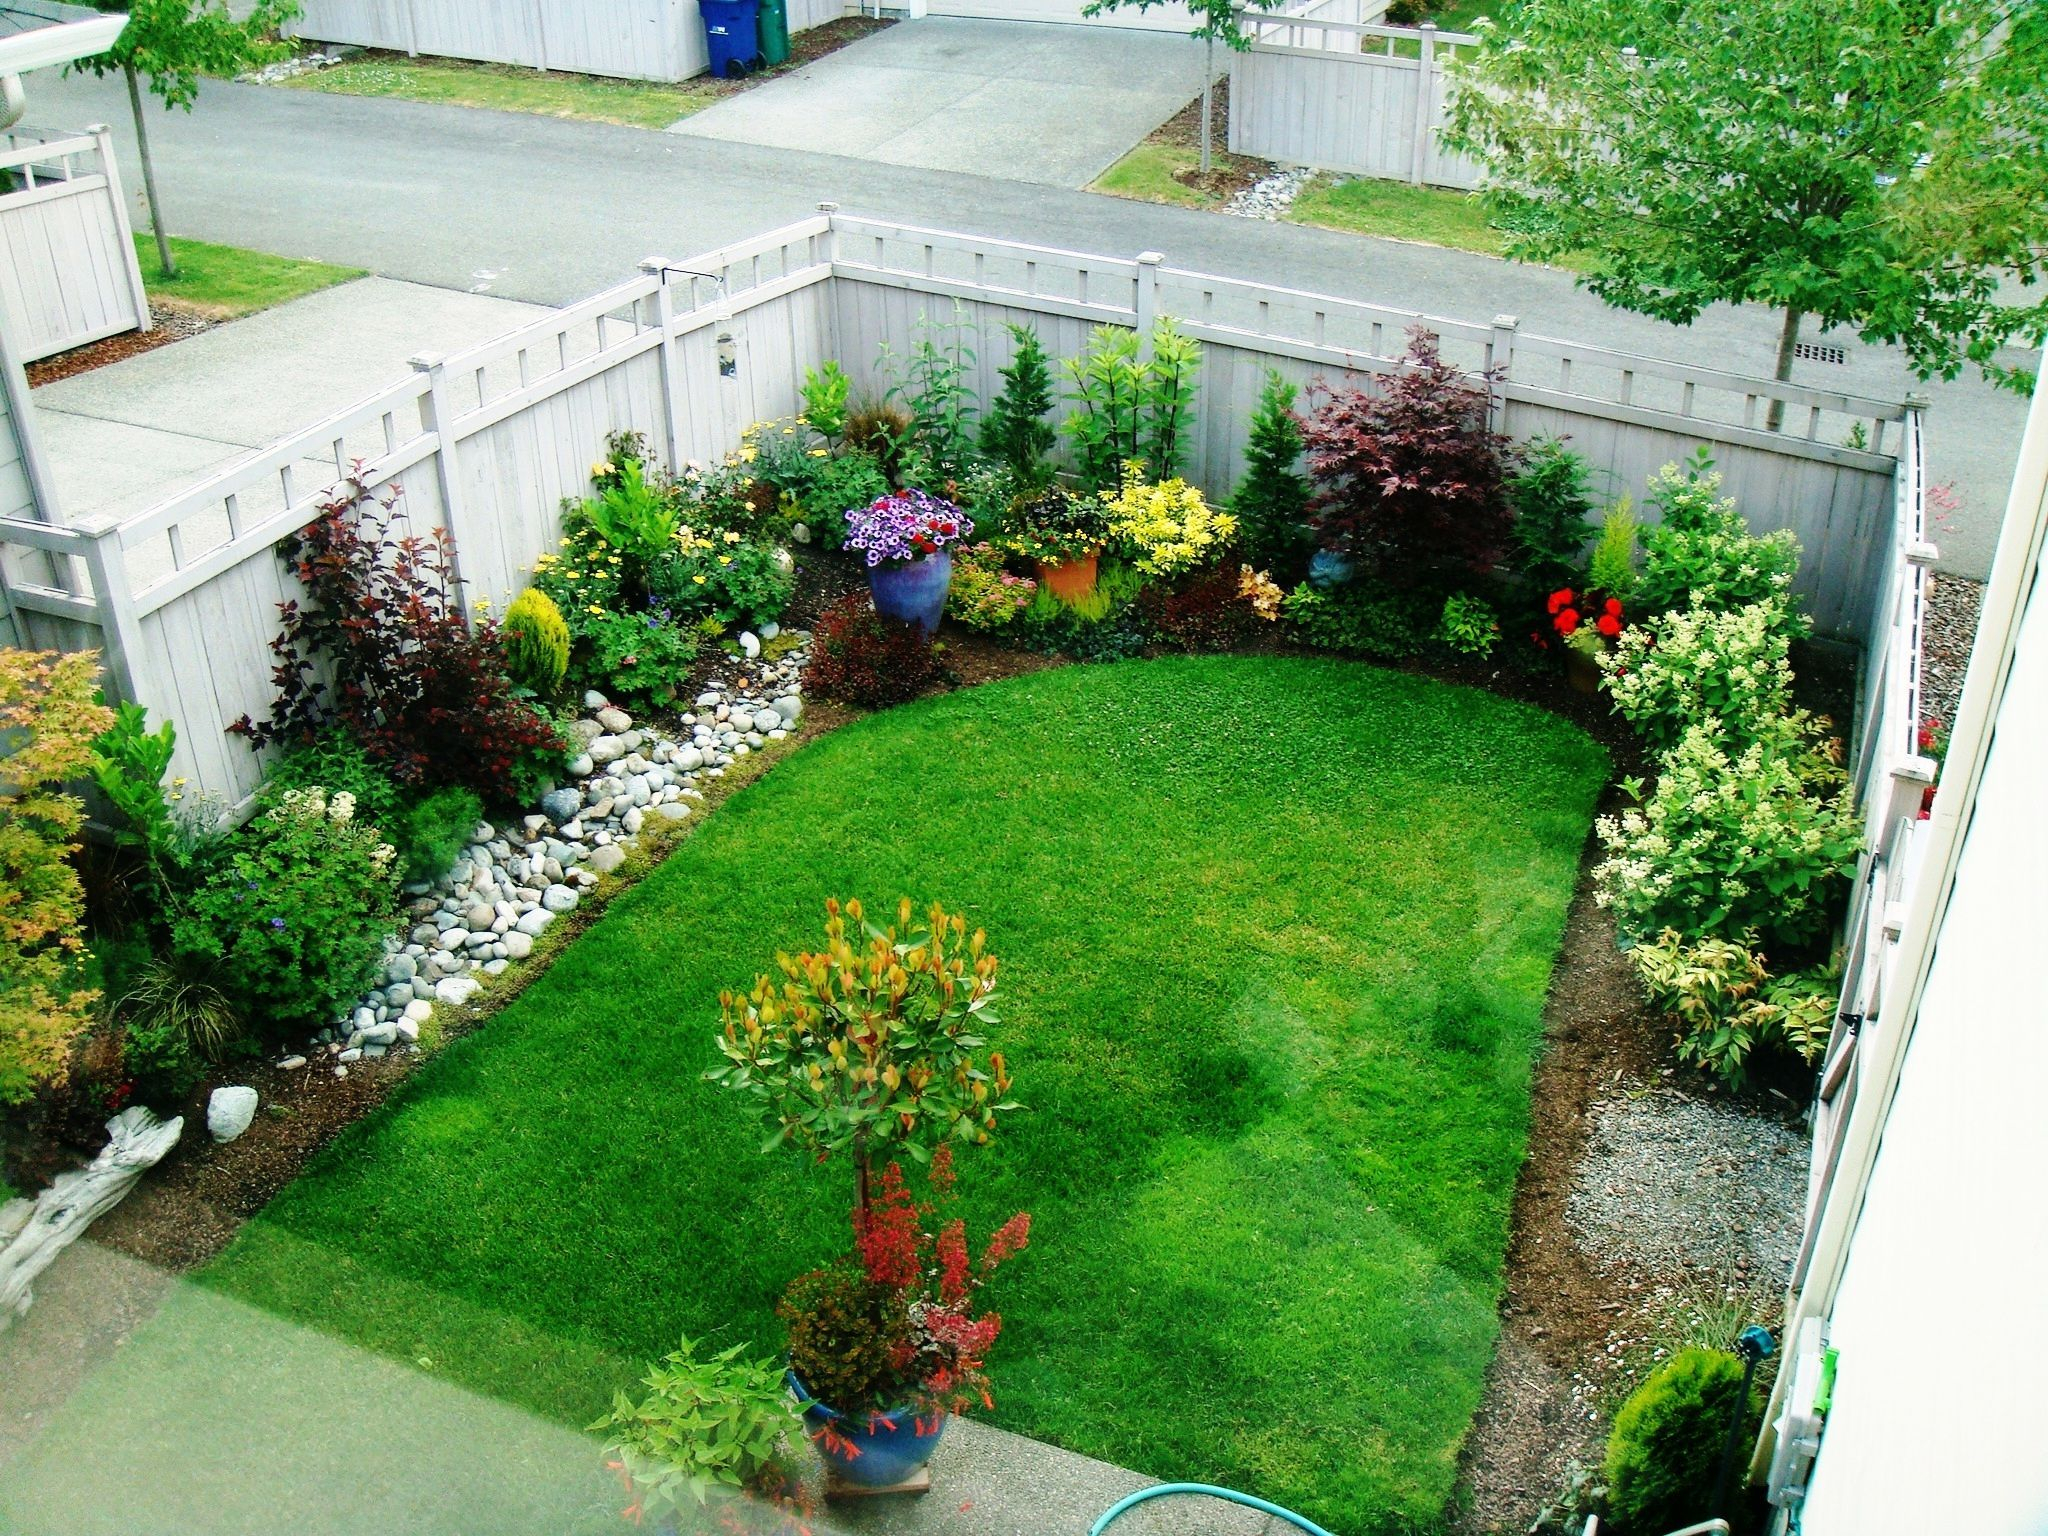 18 Garden Design For Small Backyard Piha Small Front Yard pertaining to 13 Awesome Initiatives of How to Craft Landscape Designs For Small Backyards